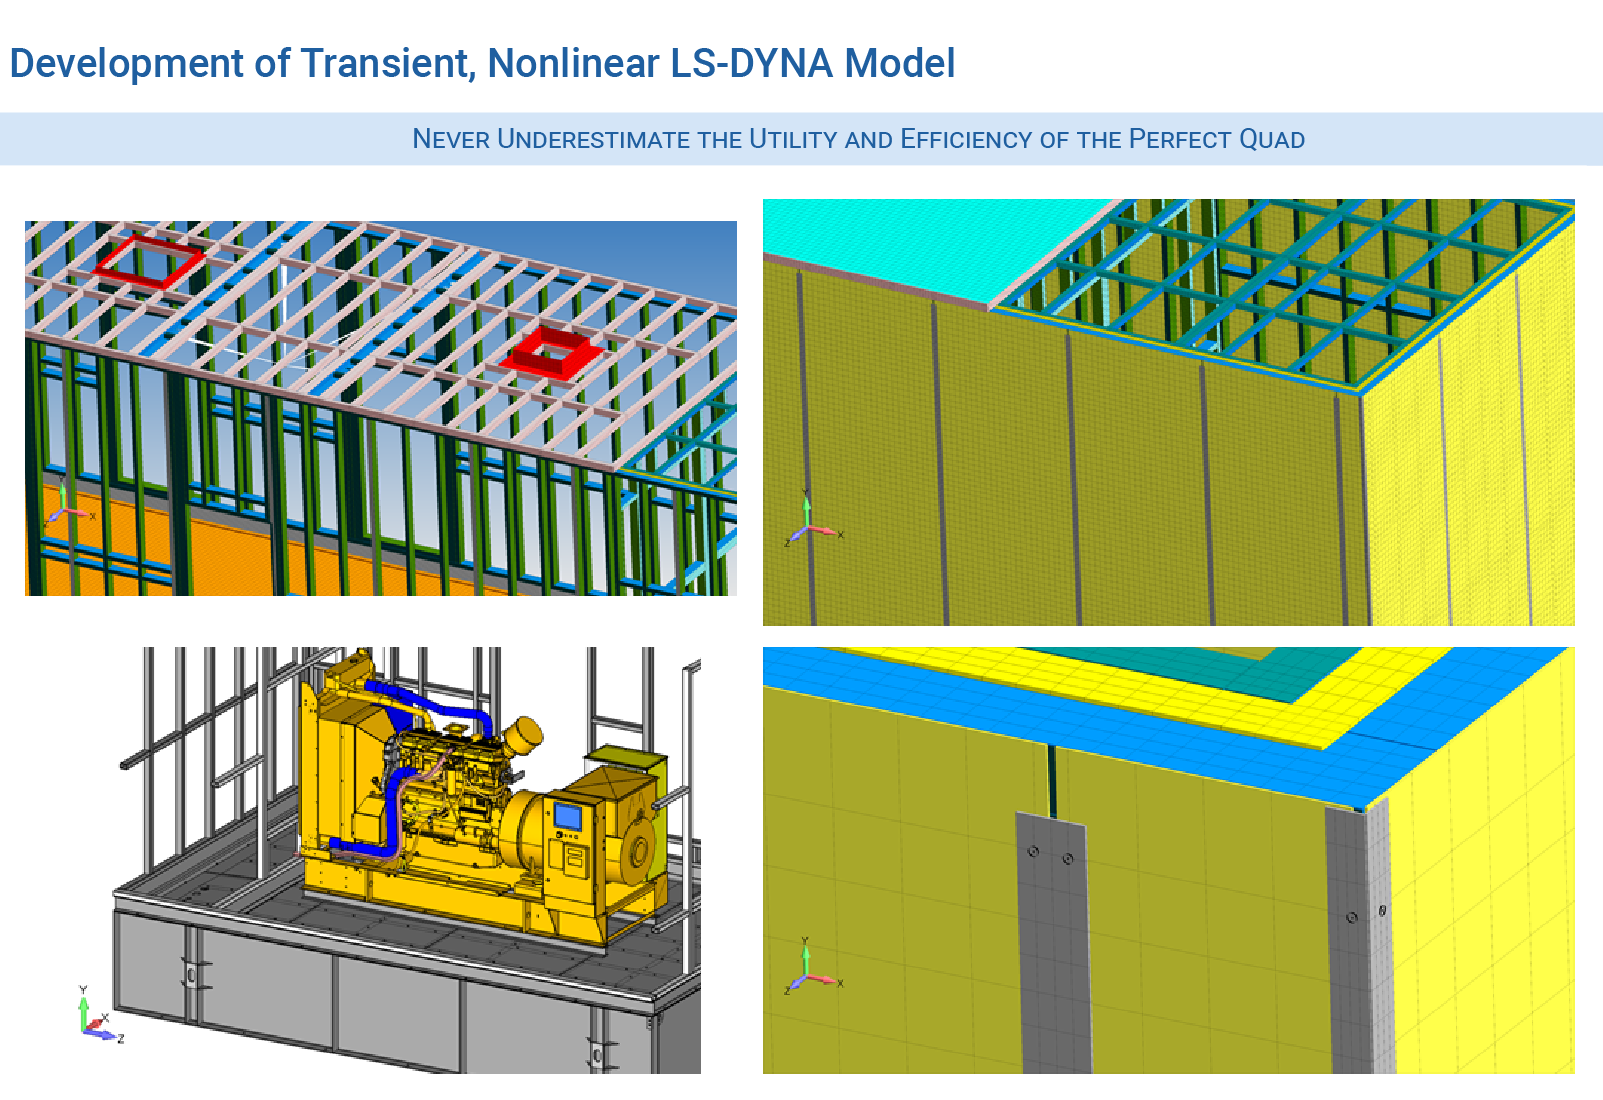 Transient nonlinear LS-DYNA model development for blast analysis of building